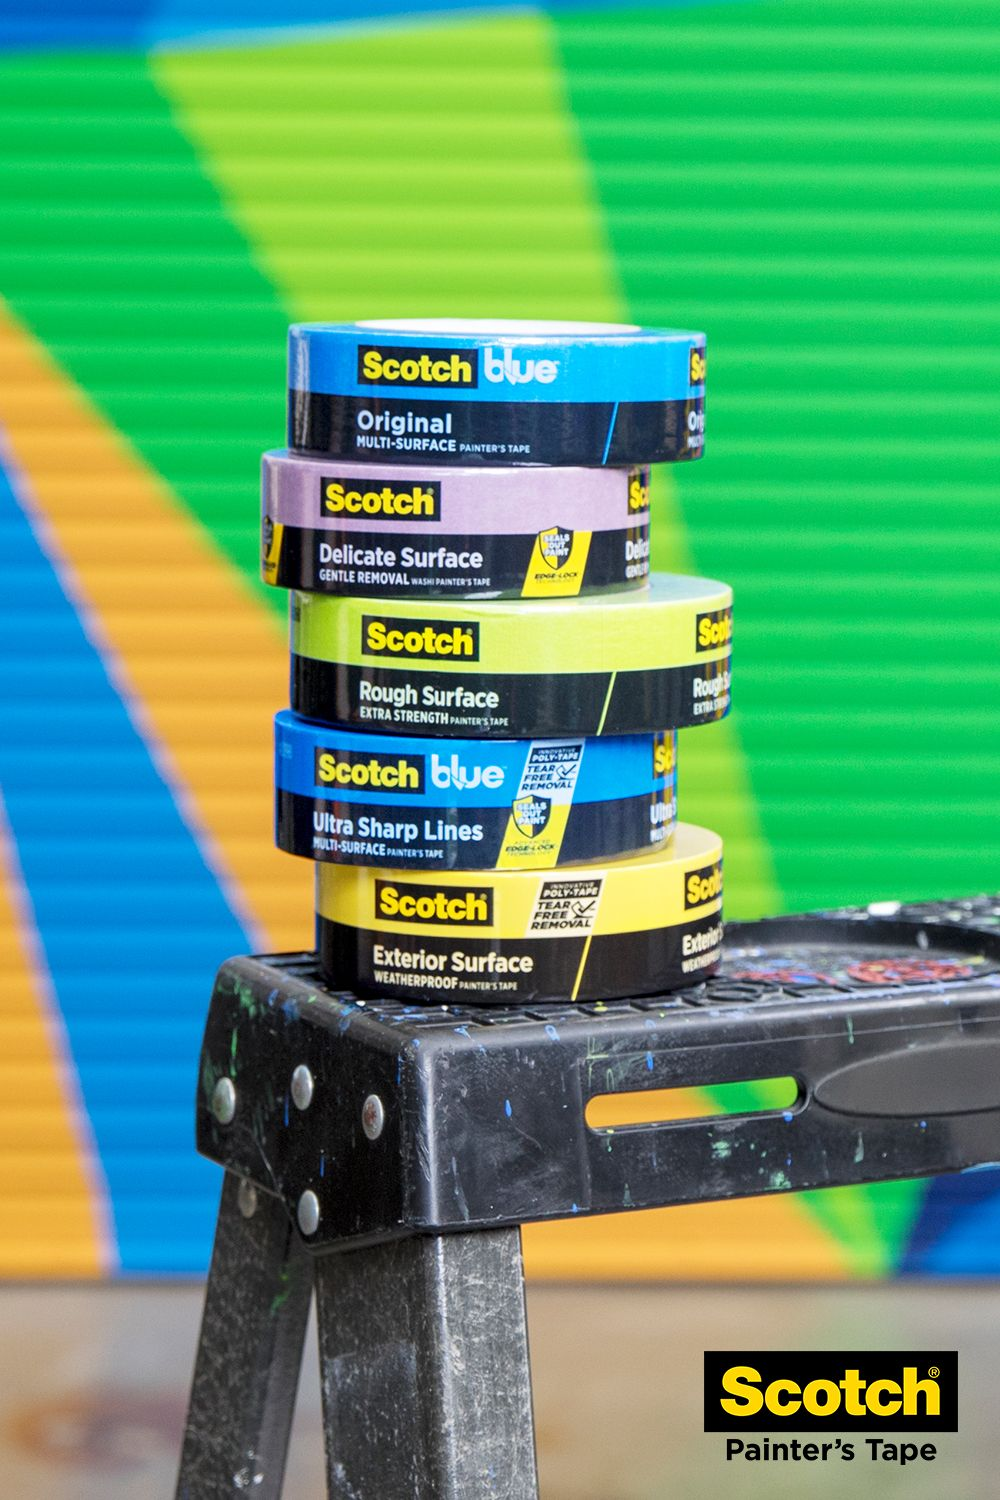 With An Entire Line Of Tapes To Choose From You Ll Be Ready To Conquer Your Next Project The Best Paint Jobs Start Wit With Images Cool Paintings Painters Tape Paint Job